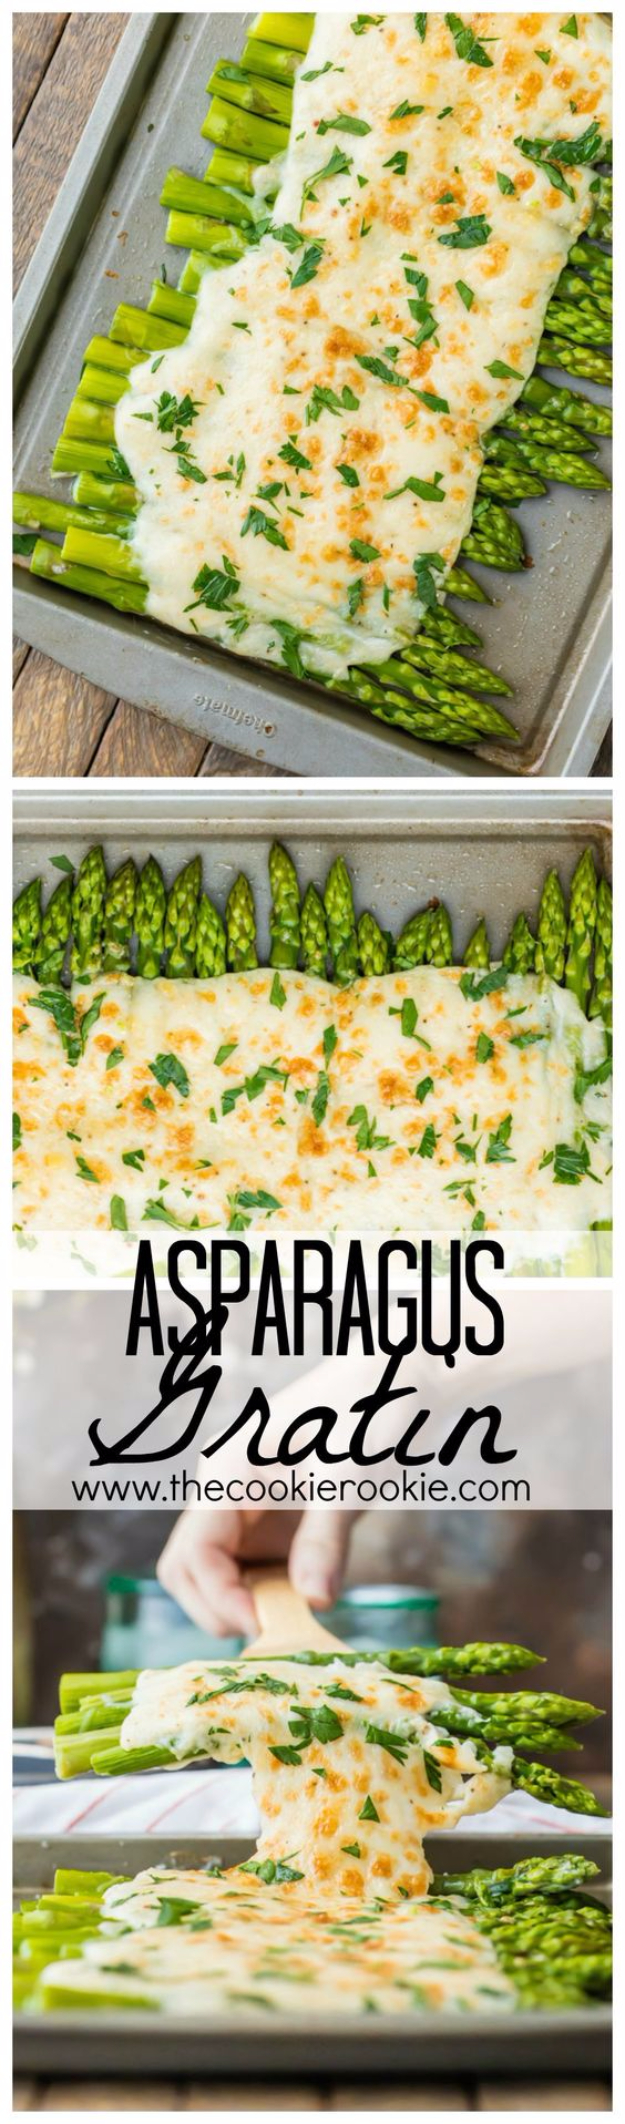 Easy Thanksgiving Recipes - Three Cheese Asparagus Gratin - Best Simple and Quick Recipe Ideas for Thanksgiving Dinner. Cranberries, Turkey, Gravy, Sauces, Sides, Vegetables, Dips and Desserts - DIY Cooking Tutorials With Step by Step Instructions - Ideas for A Crowd, Parties and Last Minute Recipes http://diyjoy.com/easy-thanksgiving-recipes